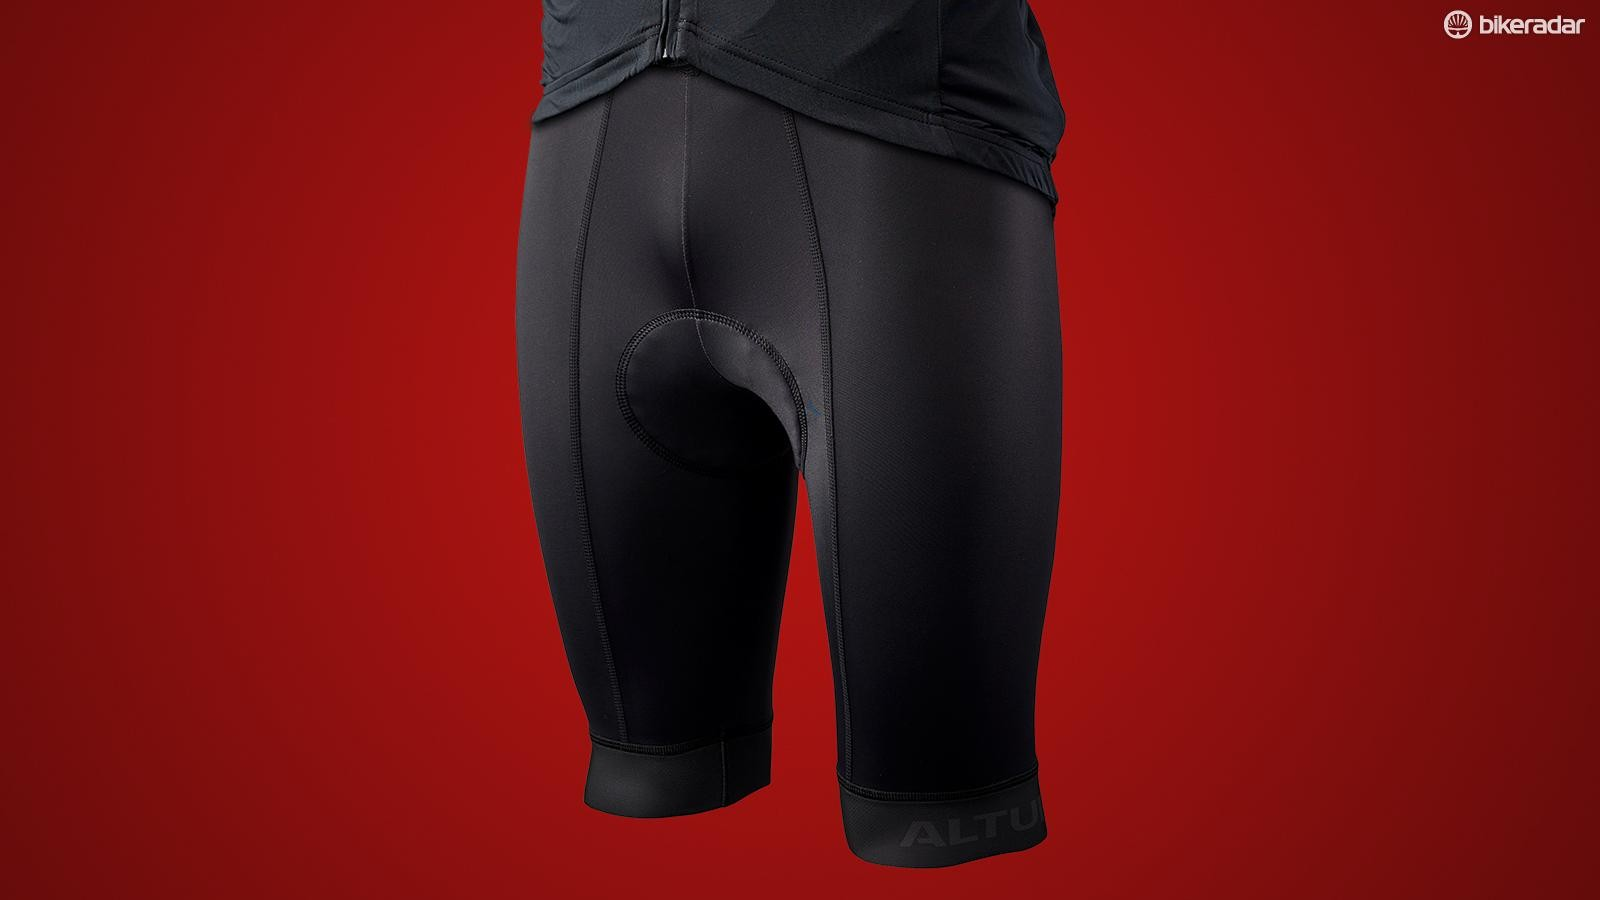 The bib shorts have a nice supportive fit